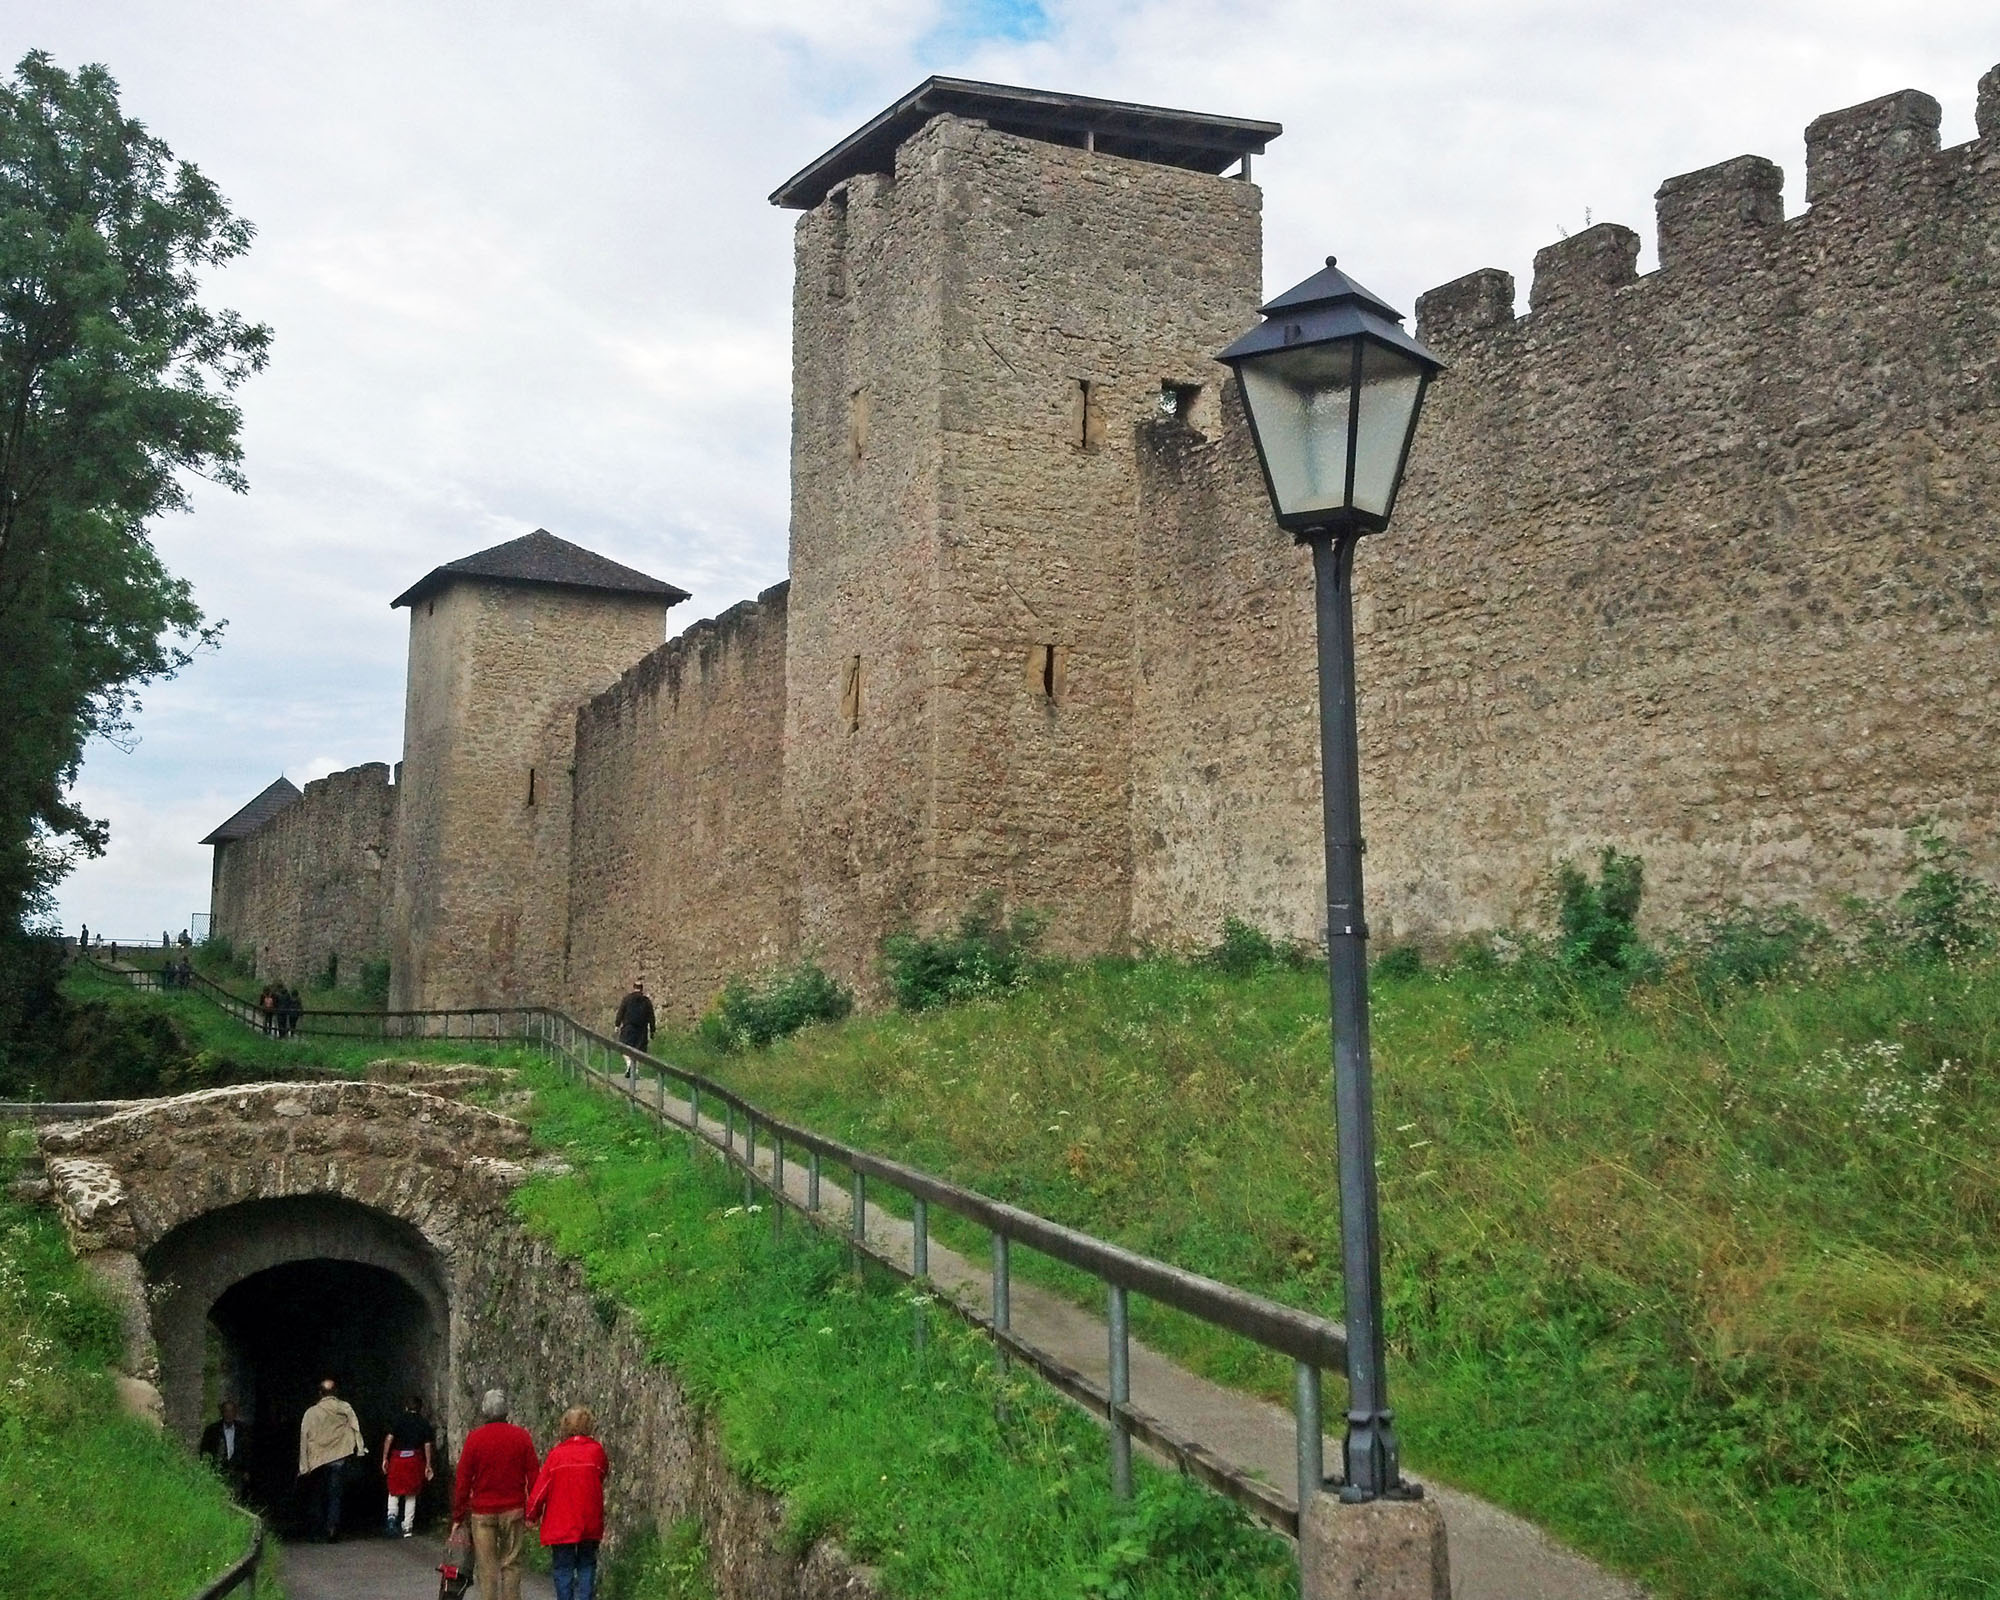 Medieval city walls dating back to 1470.